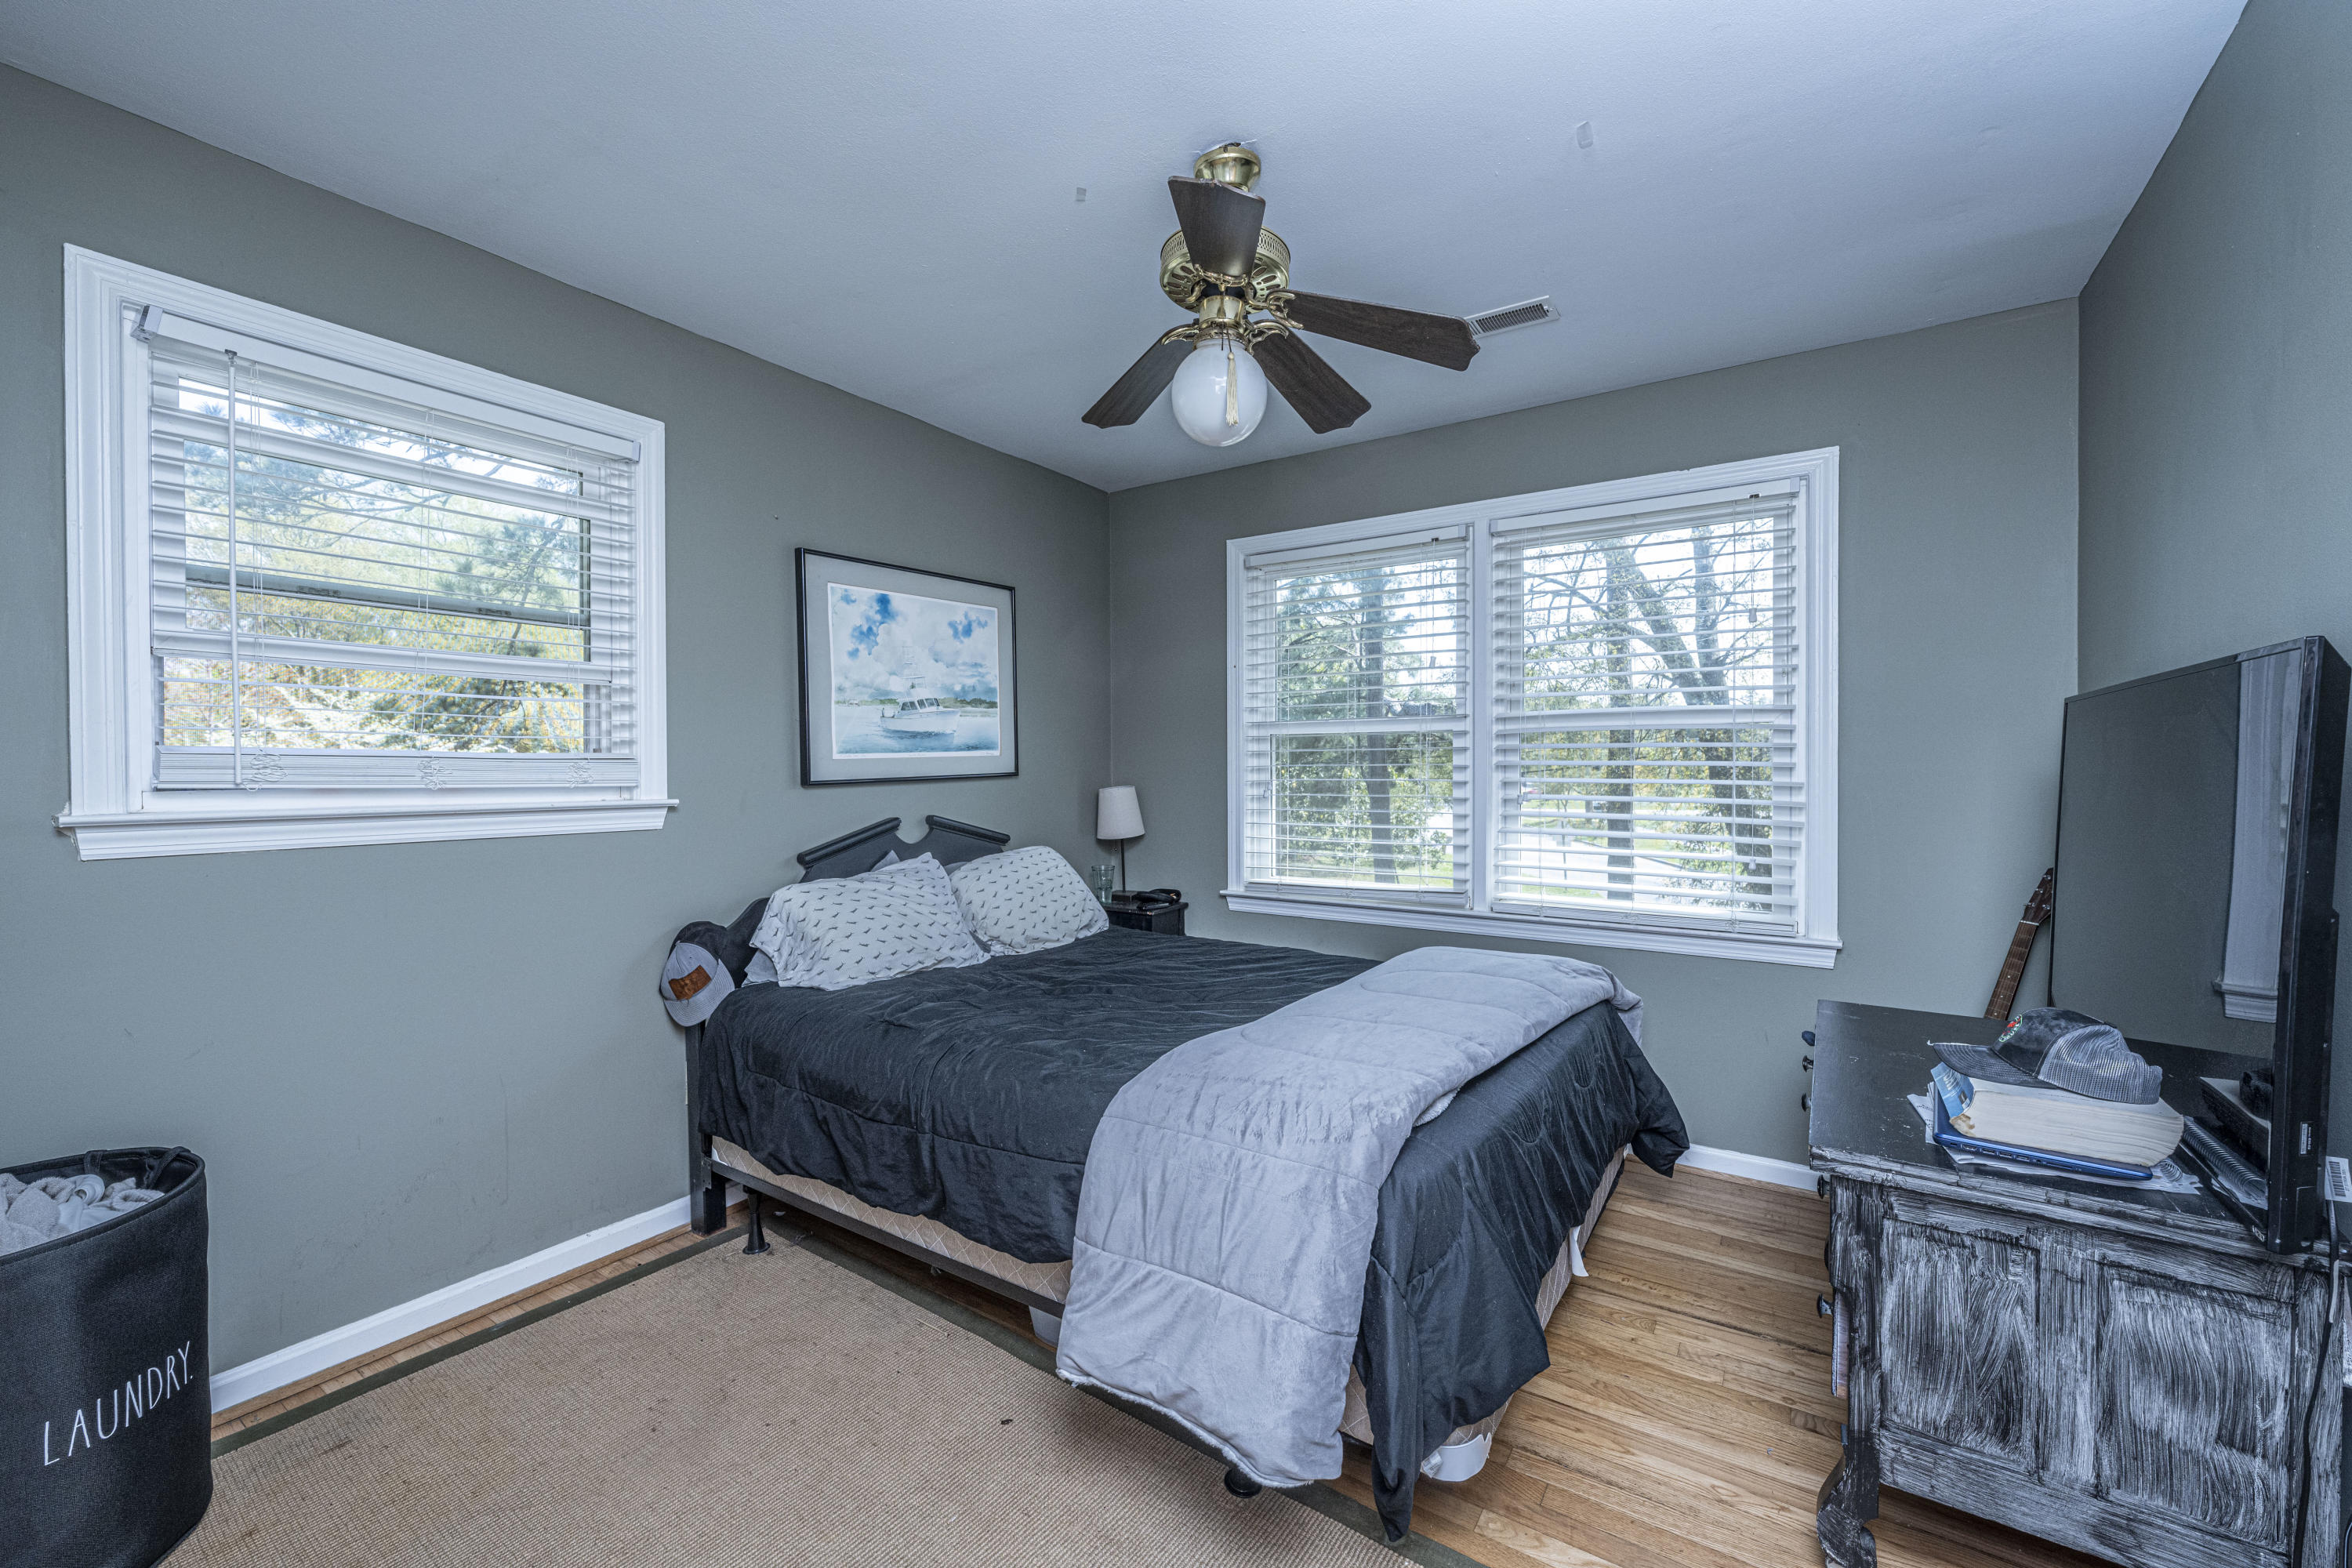 Stiles Point Homes For Sale - 775 Sparrow, Charleston, SC - 7